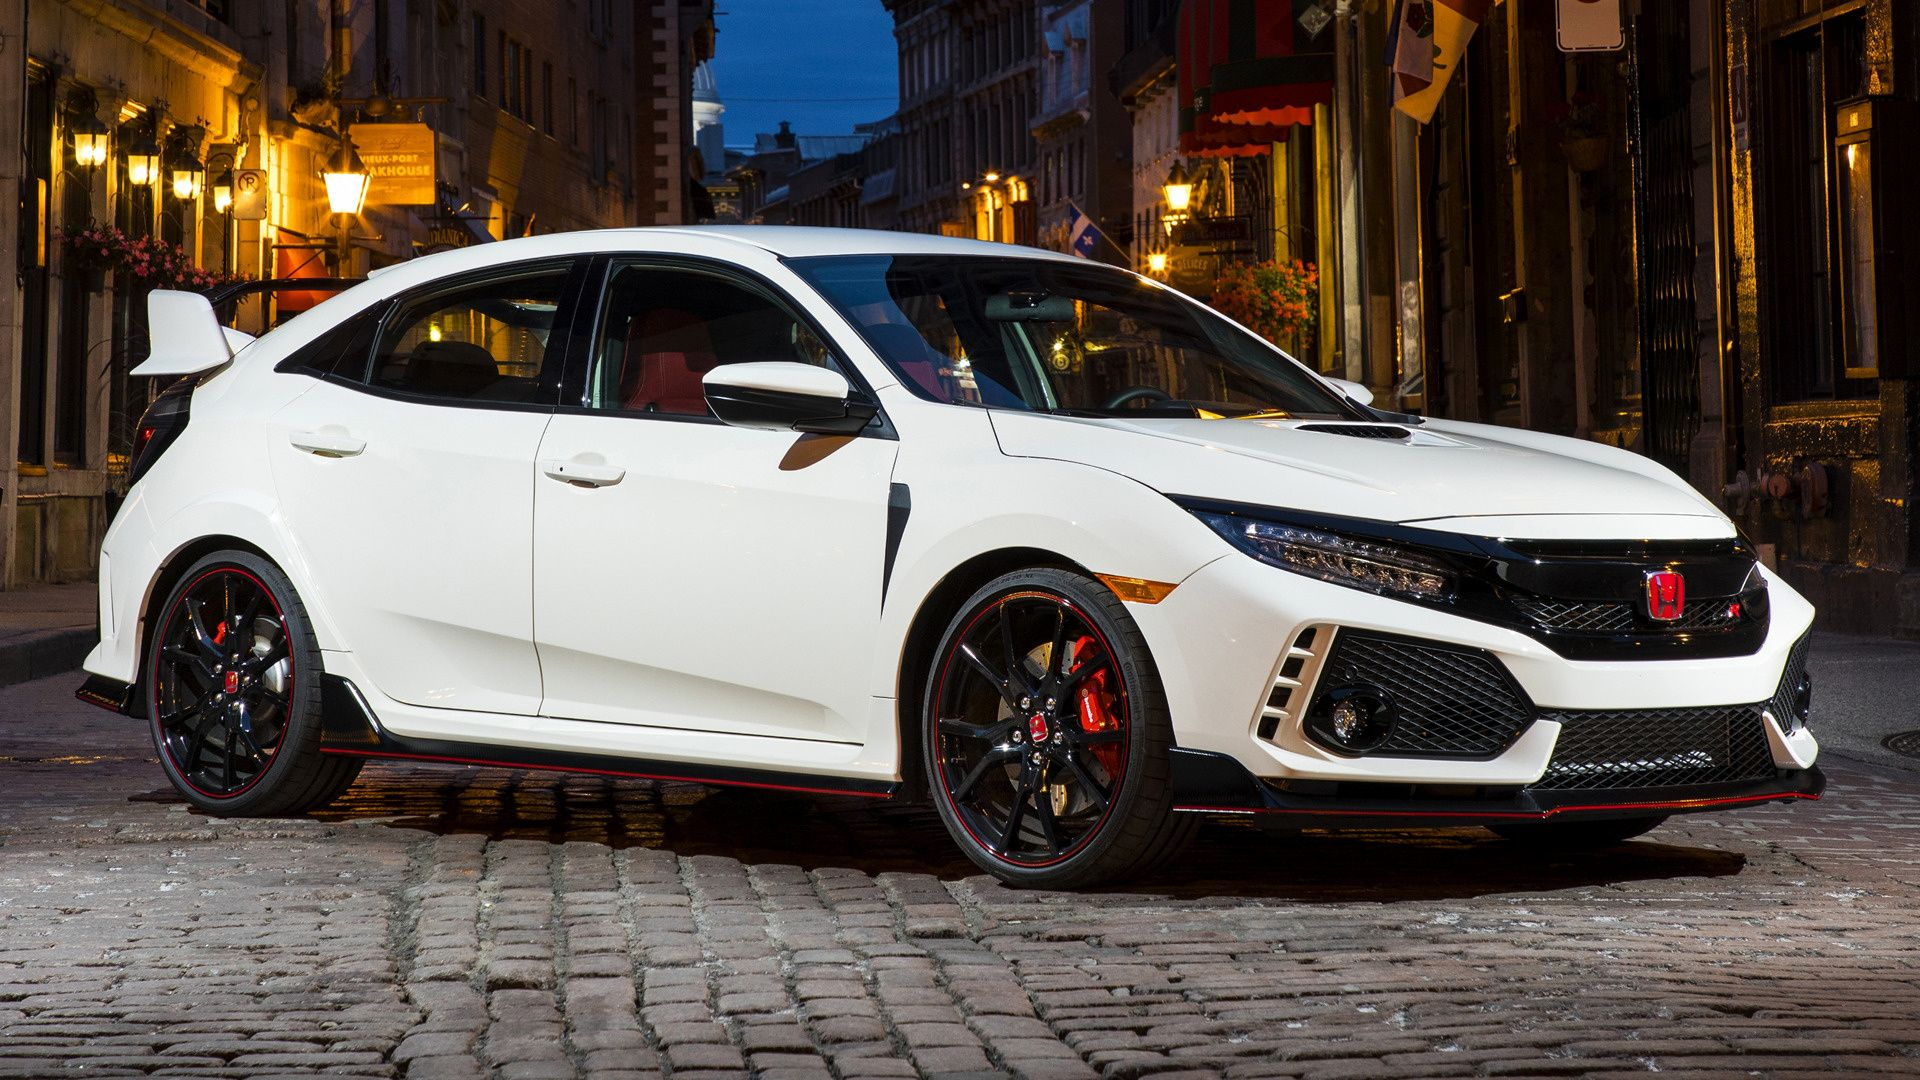 Honda Civic Type R Wallpaper Hd Resolution Pwb Cars Desktop Hd